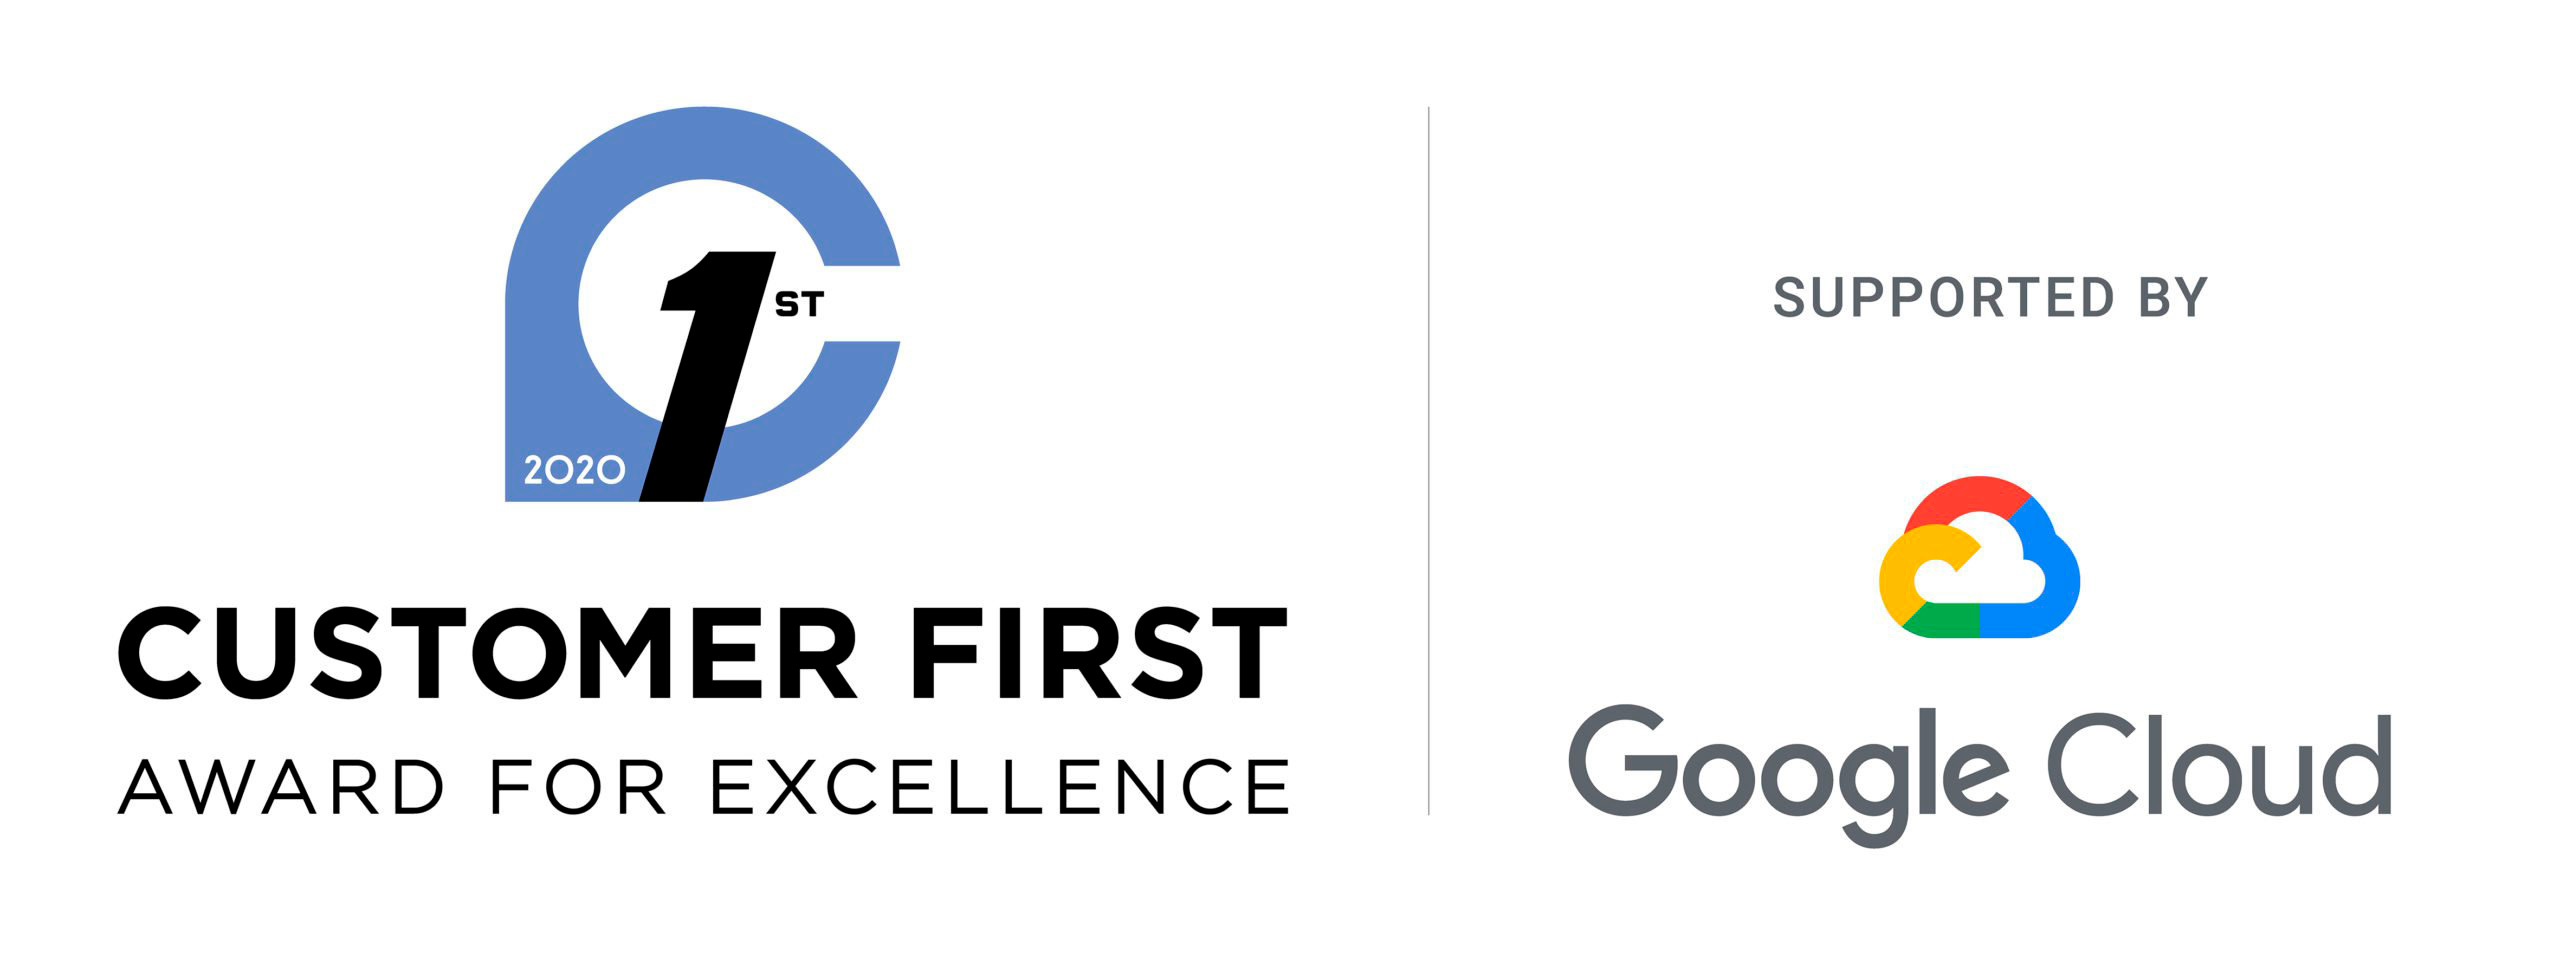 Premio Customer First 2020